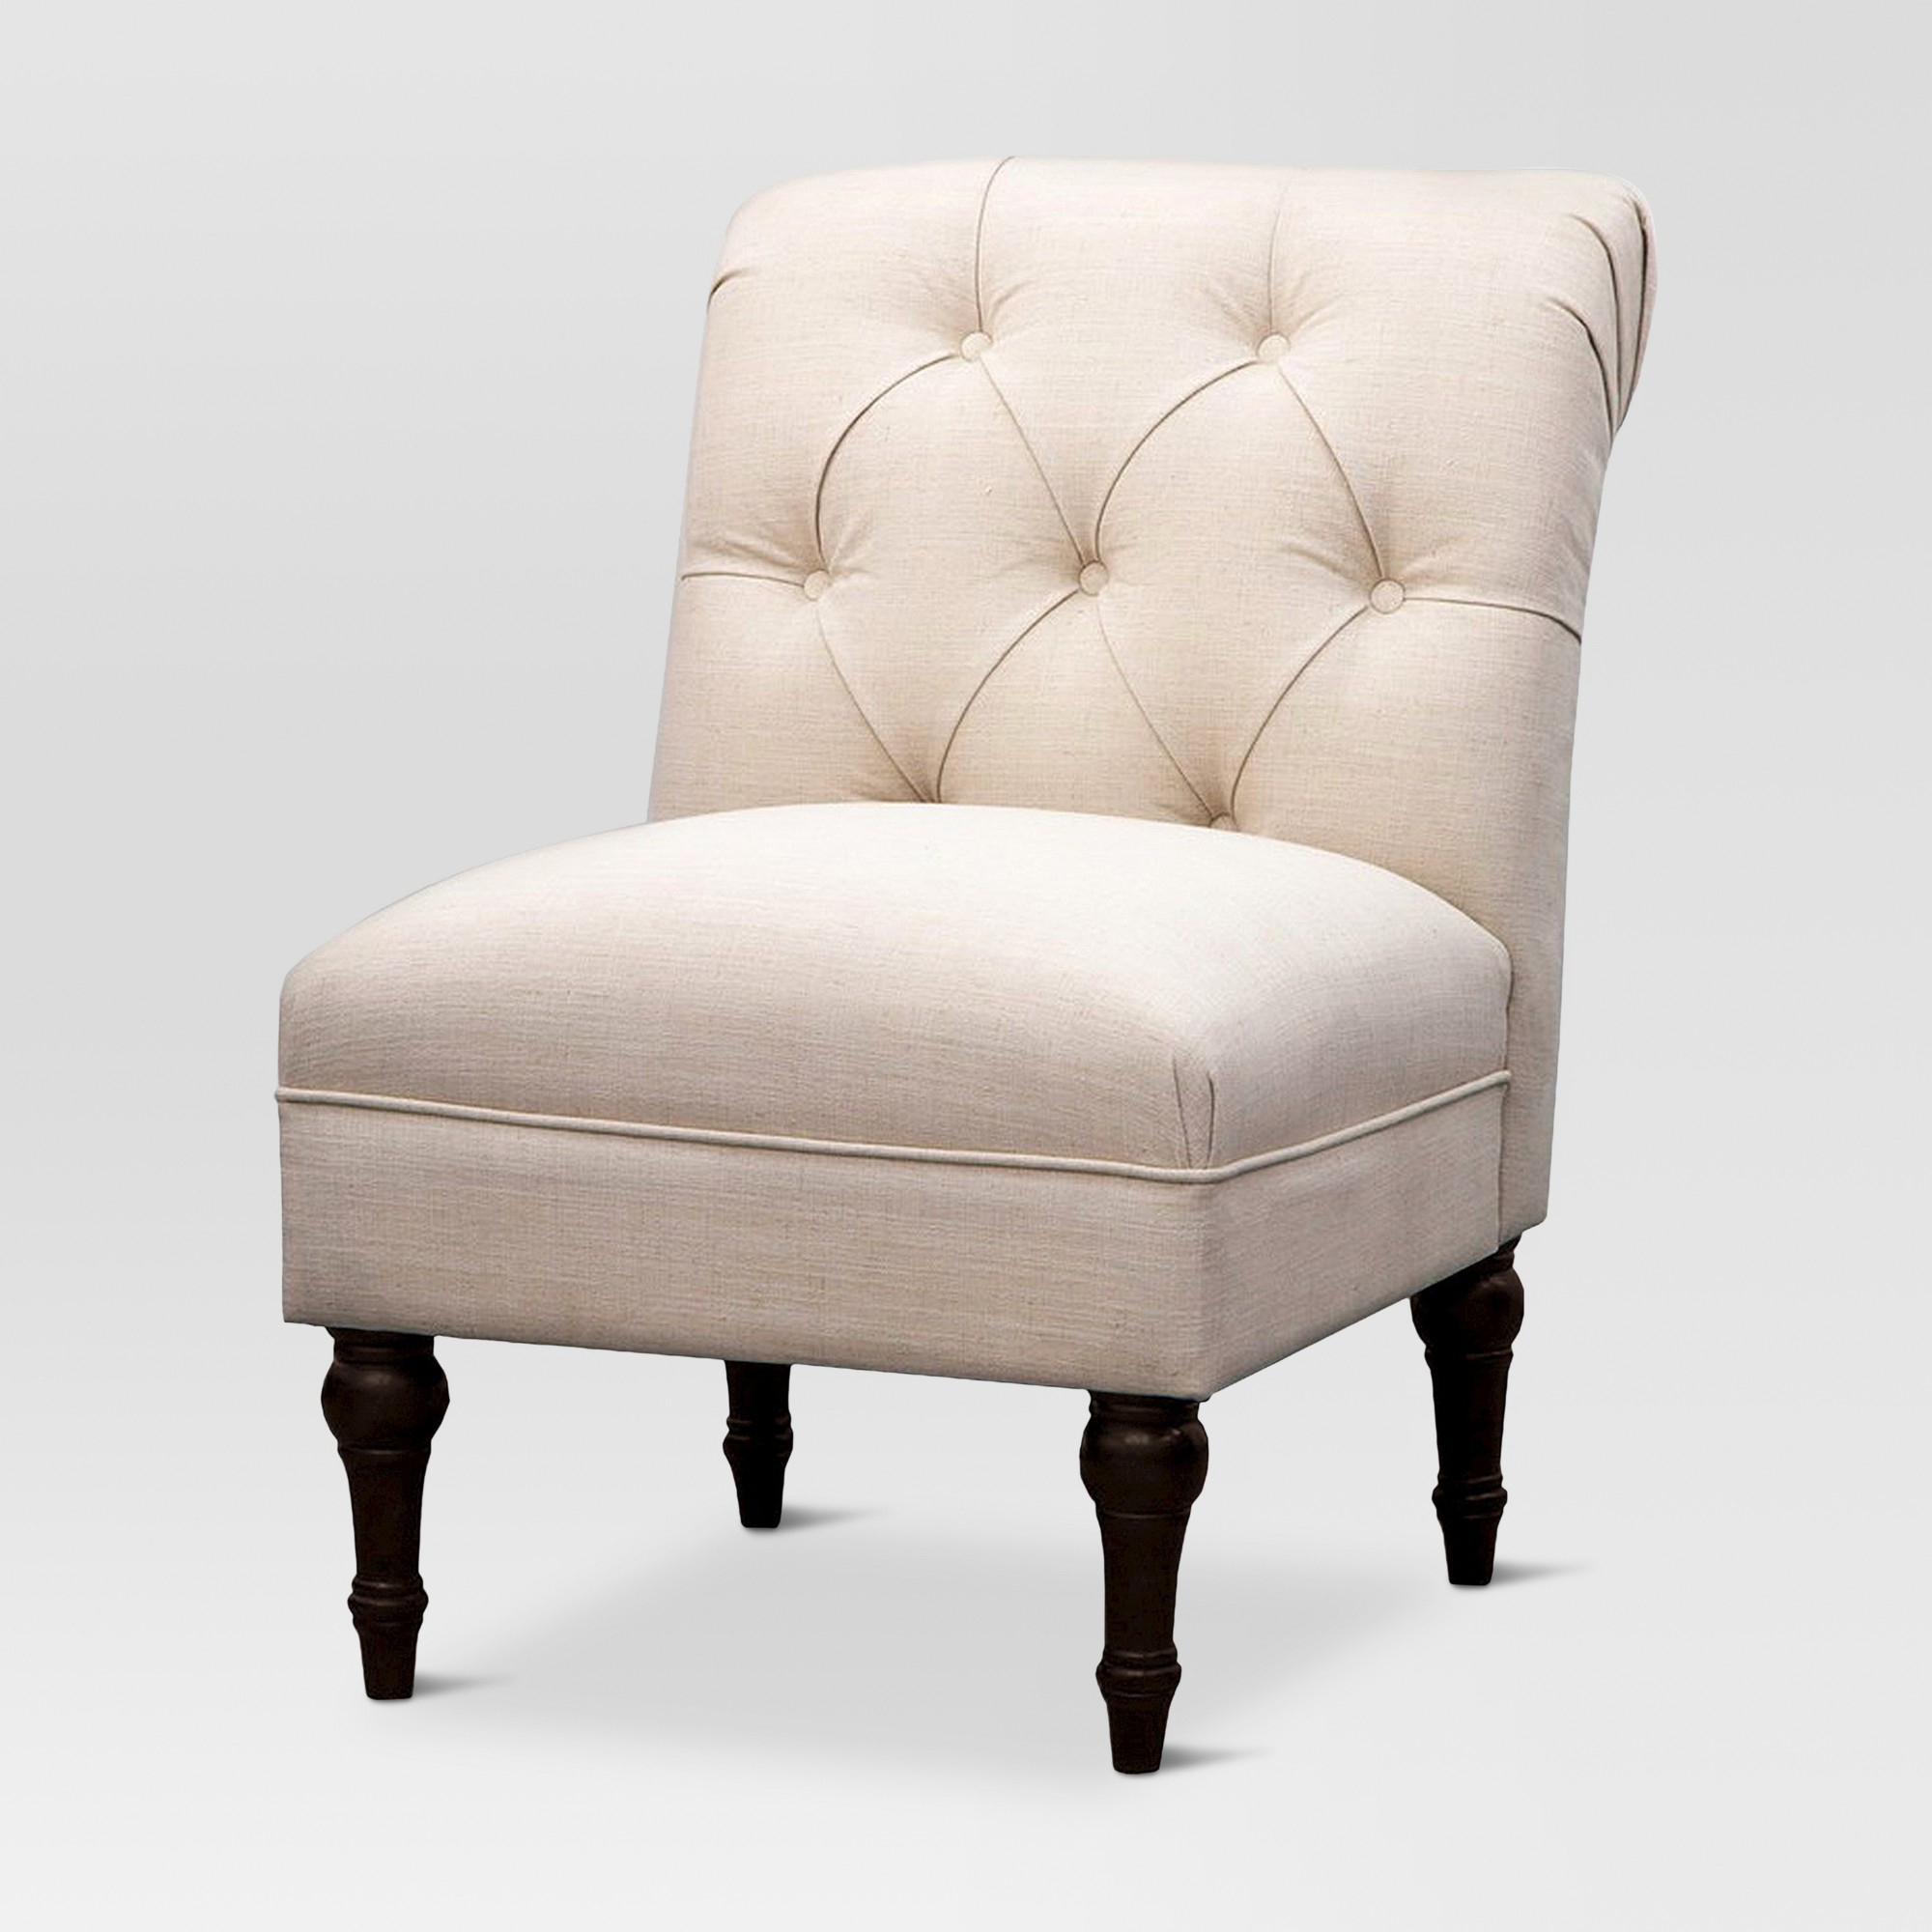 Upholstered Chair Tufted Slipper Linen – Beige – Threshold, Linen Beige – Target Regarding Maubara Tufted Wingback Chairs (View 13 of 15)